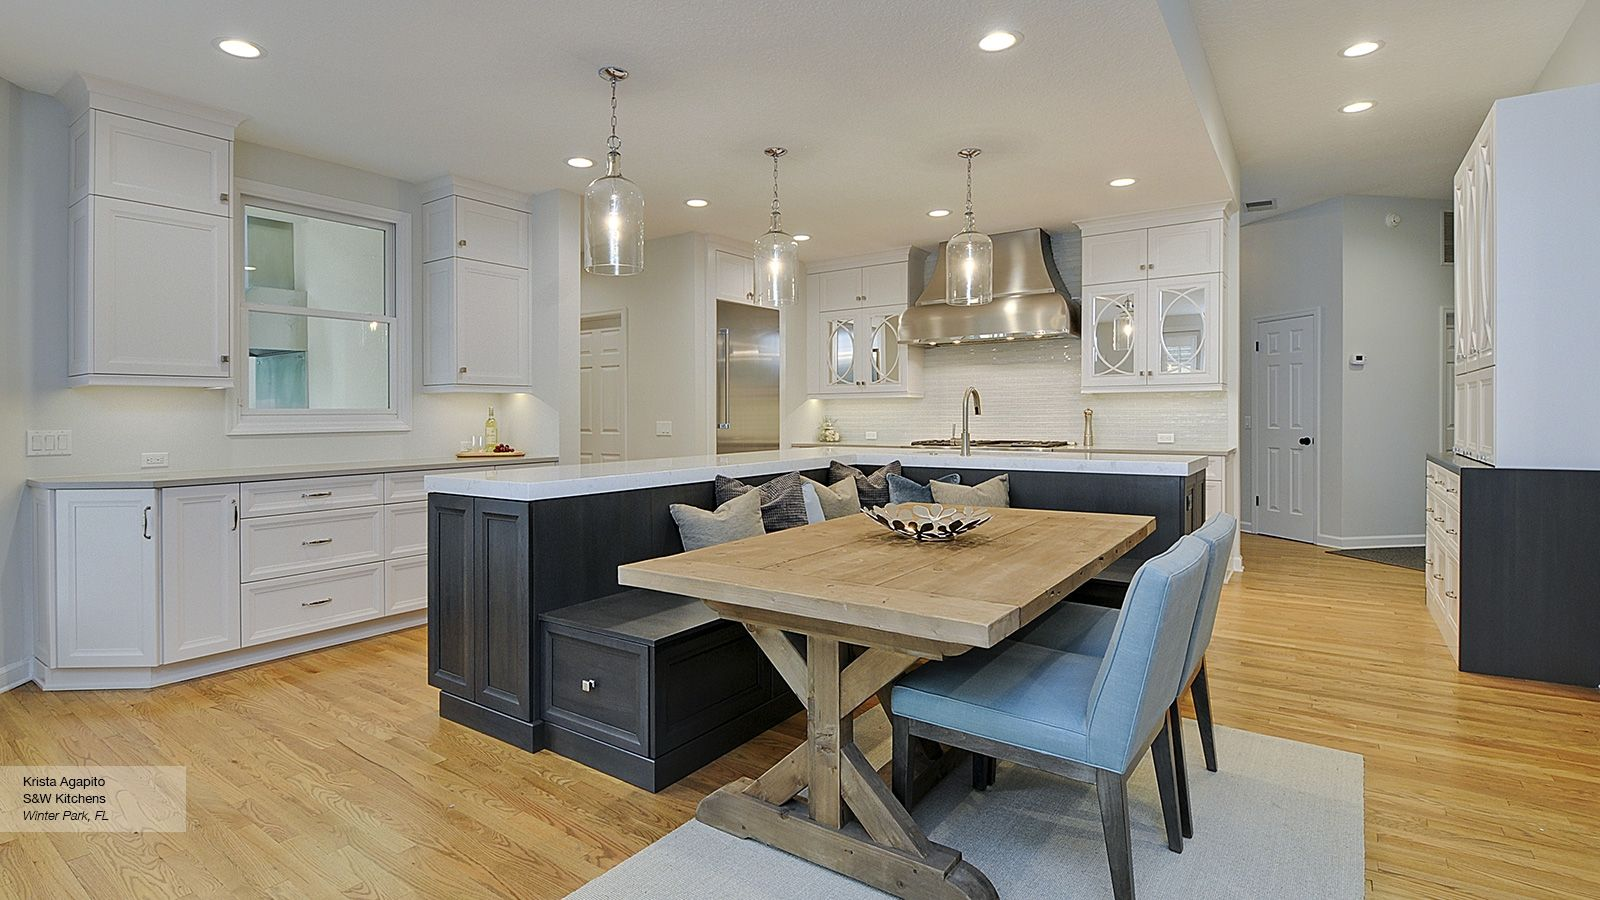 20 Pretty Kitchen Island With Built In Seating Kitchen Island